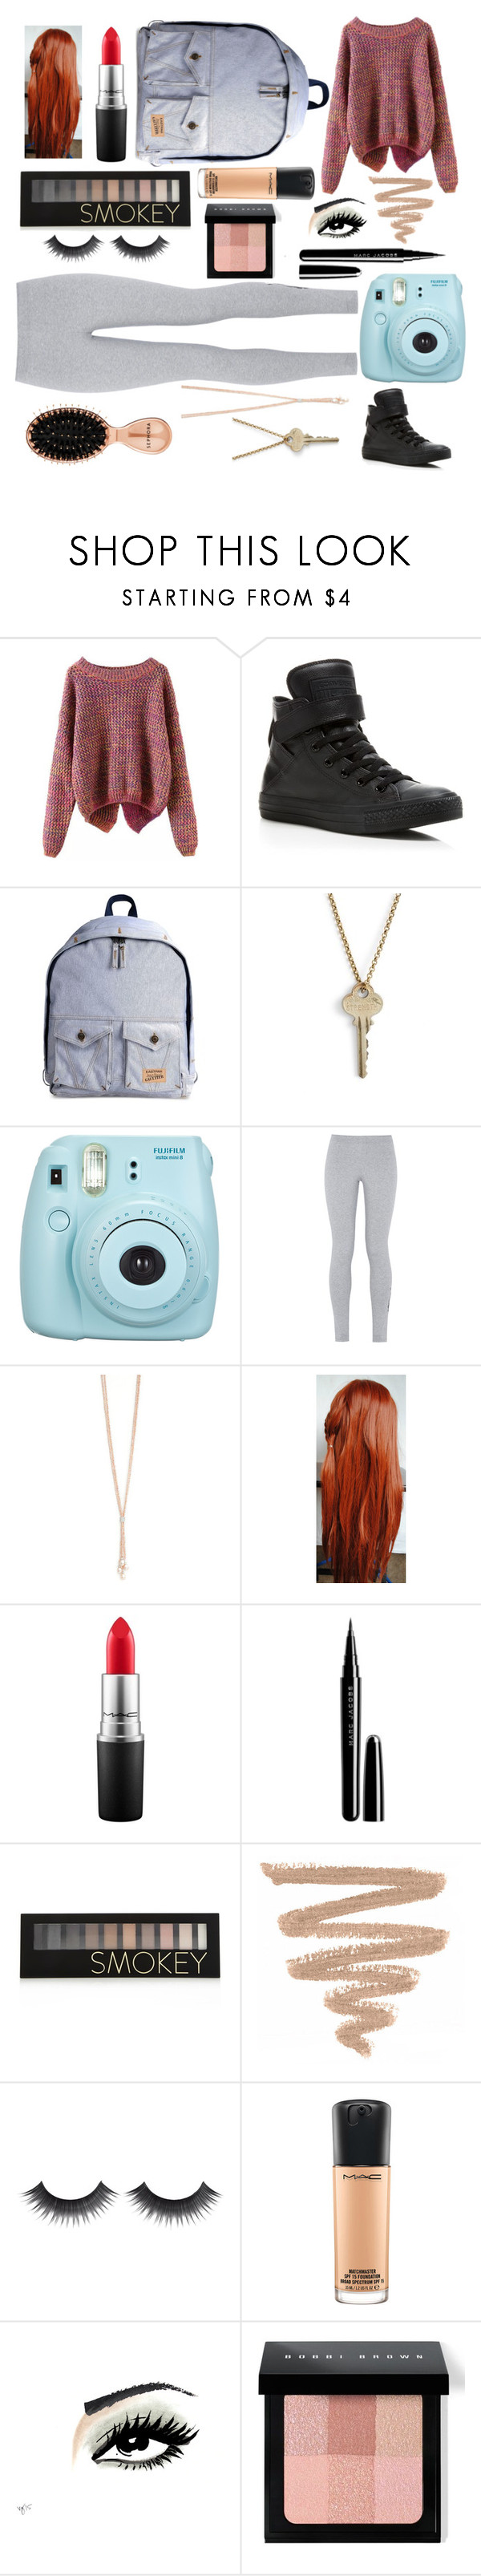 """Friday Photography"" by lauren-plans ❤ liked on Polyvore featuring Converse, Eastpak, The Giving Keys, NIKE, MAC Cosmetics, Marc Jacobs, Forever 21, Bobbi Brown Cosmetics, Sephora Collection and 043"